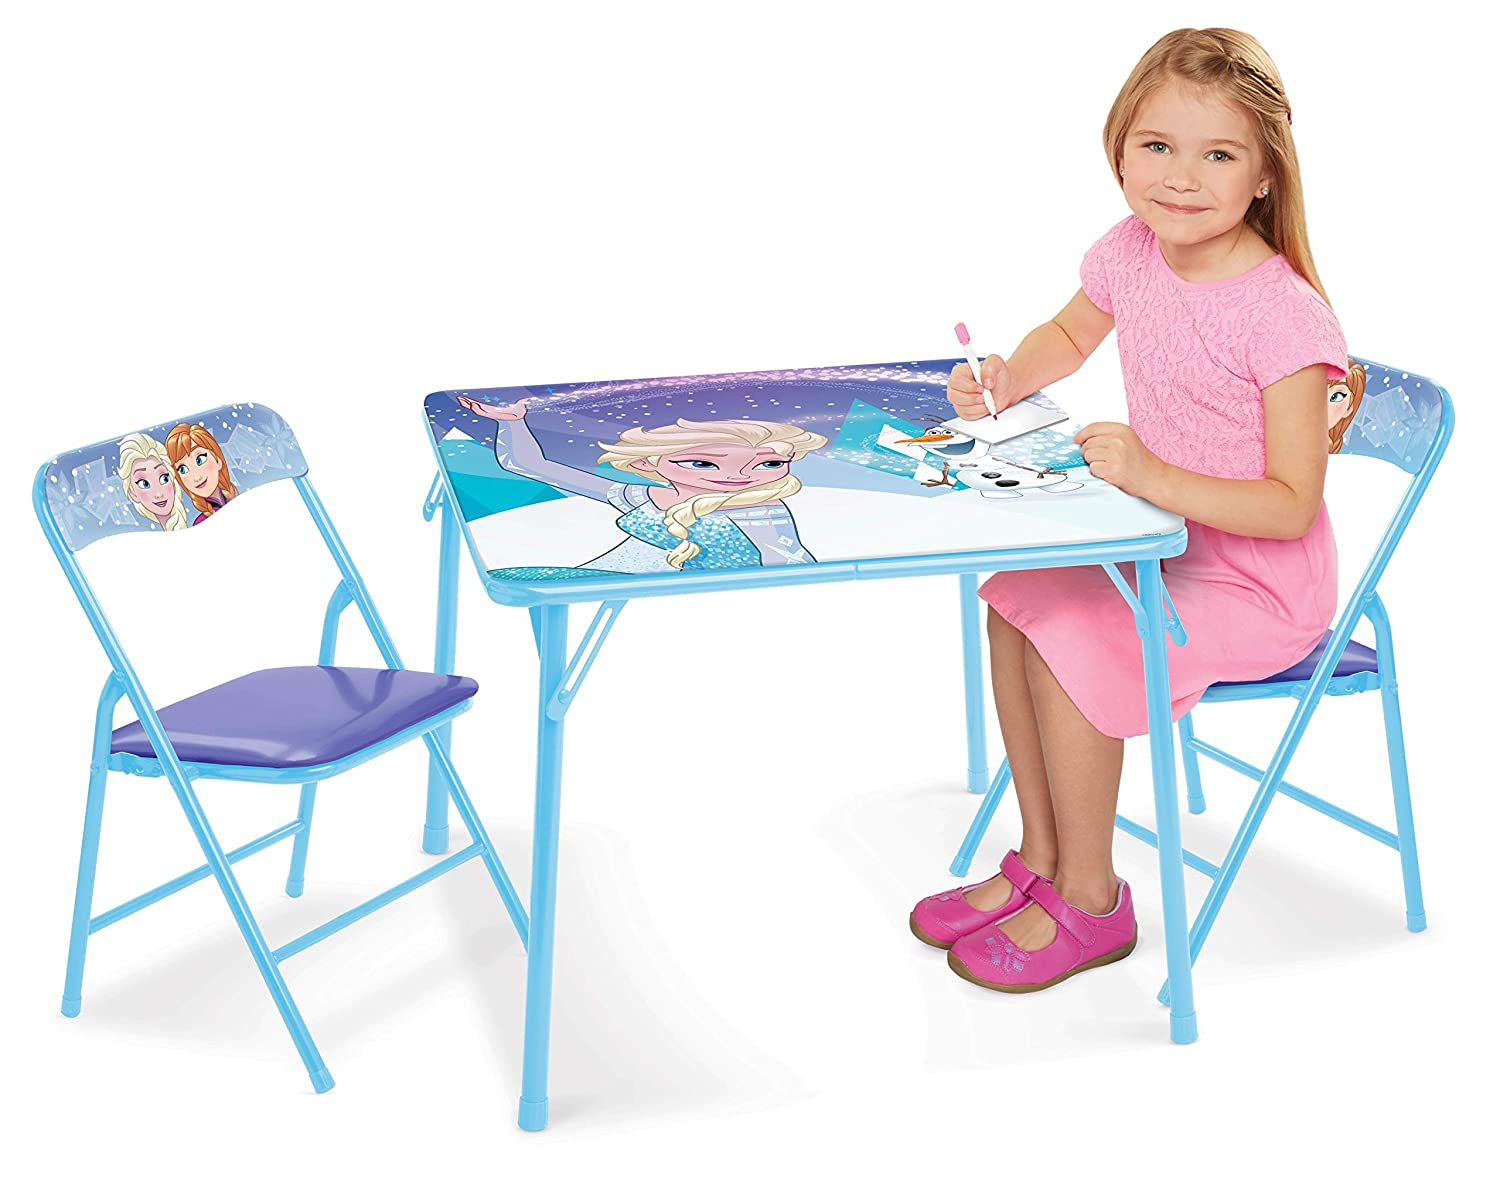 Frozen Table Chairs Set – Sparkle Like Magic Activity Table 2 Chairs